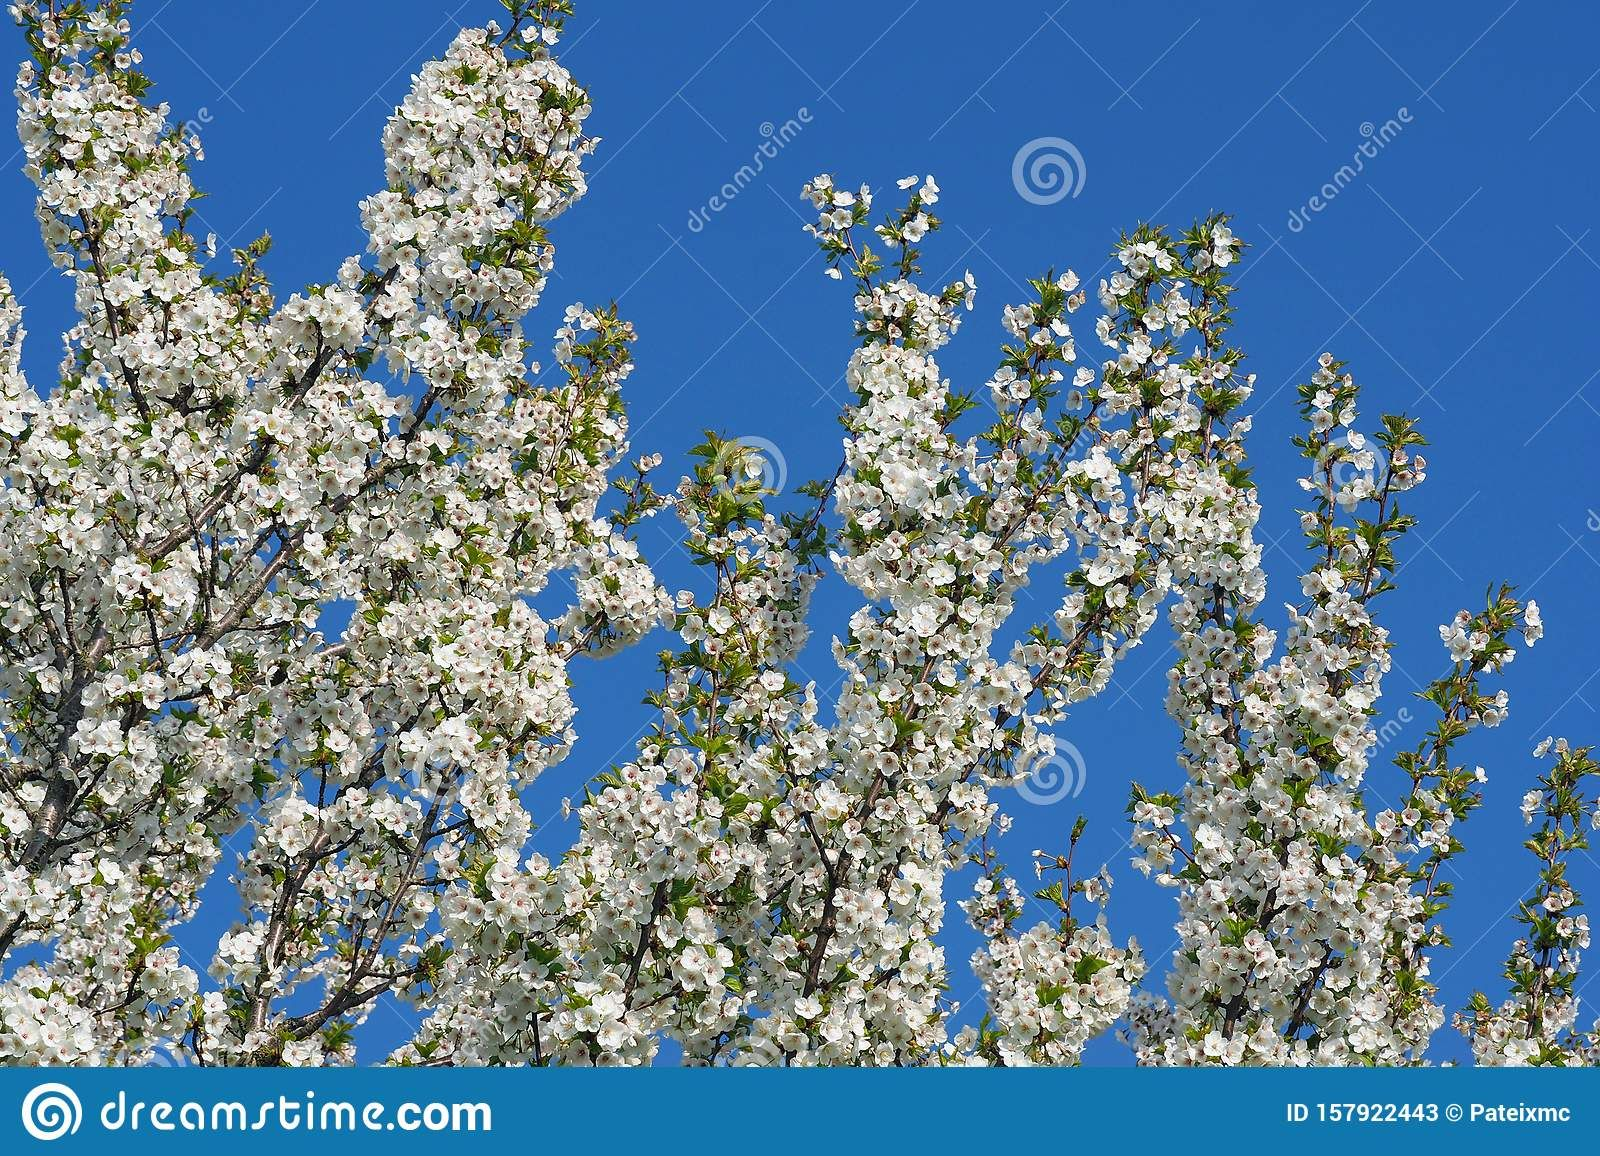 Photo About Cherry Blossom Tree With Blossoming White Flowers And Clear Blue Sky During Springtime On A Sunny Cherry Blossom Tree Blossom Trees Clear Blue Sky